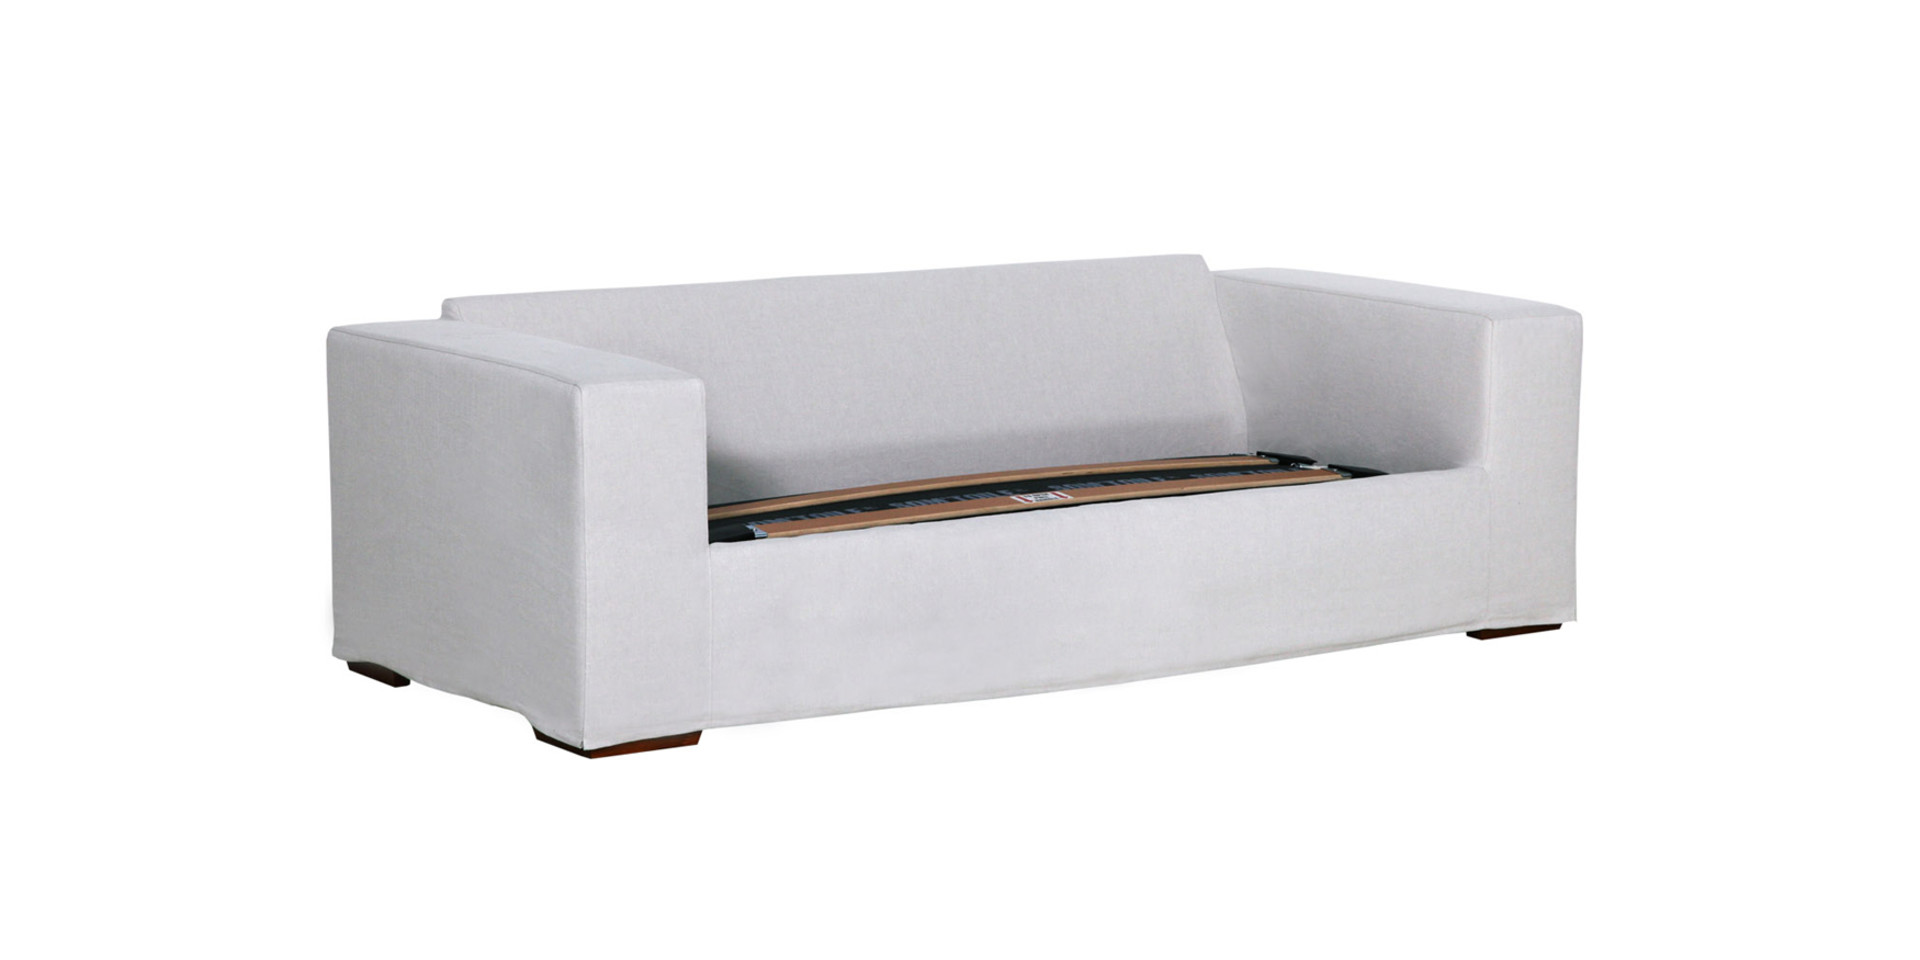 sits-antares-canape-convertible-sofa_bed3_caleido3790_light_beige_3